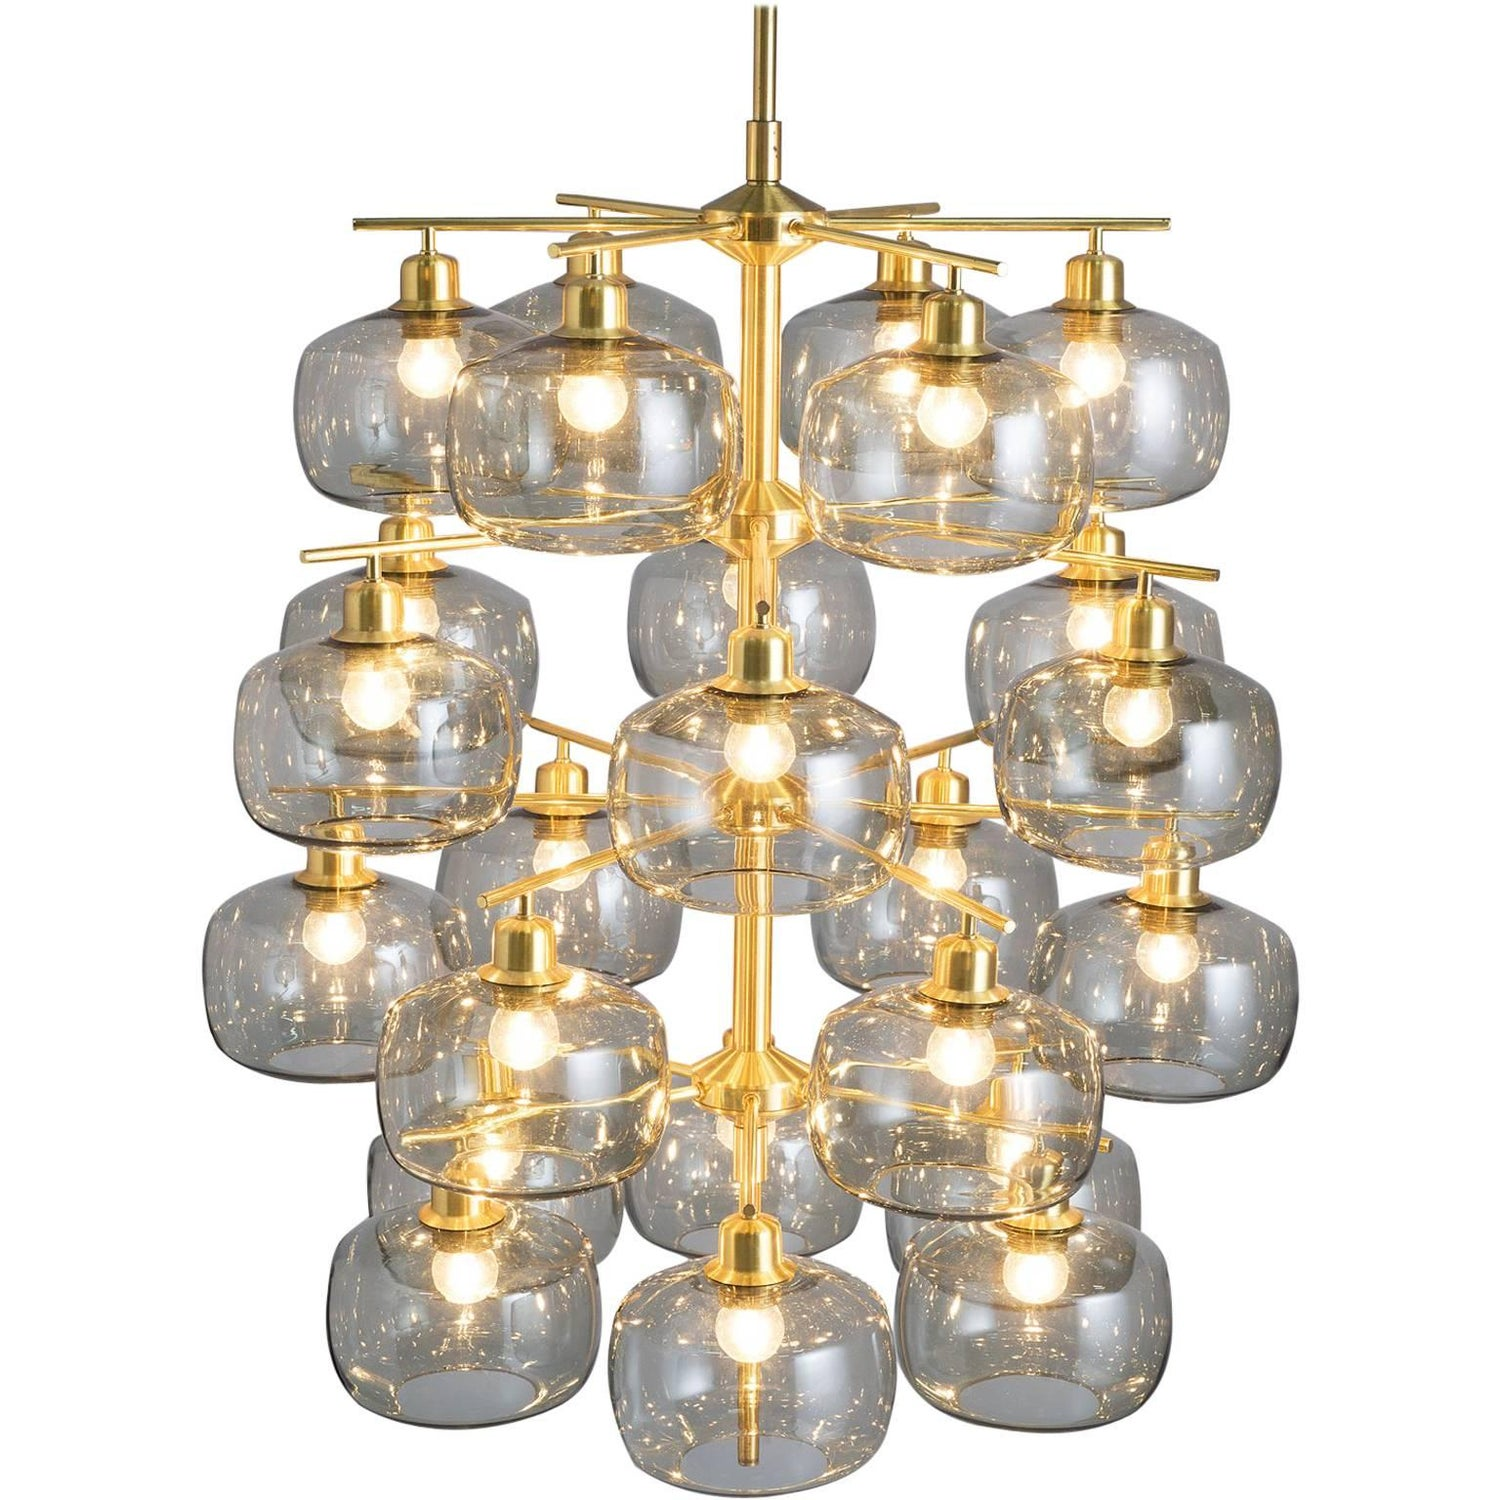 Holger johansson chandeliers and pendants 7 for sale at 1stdibs eight large swedish chandeliers by holger johansson 1952 arubaitofo Image collections